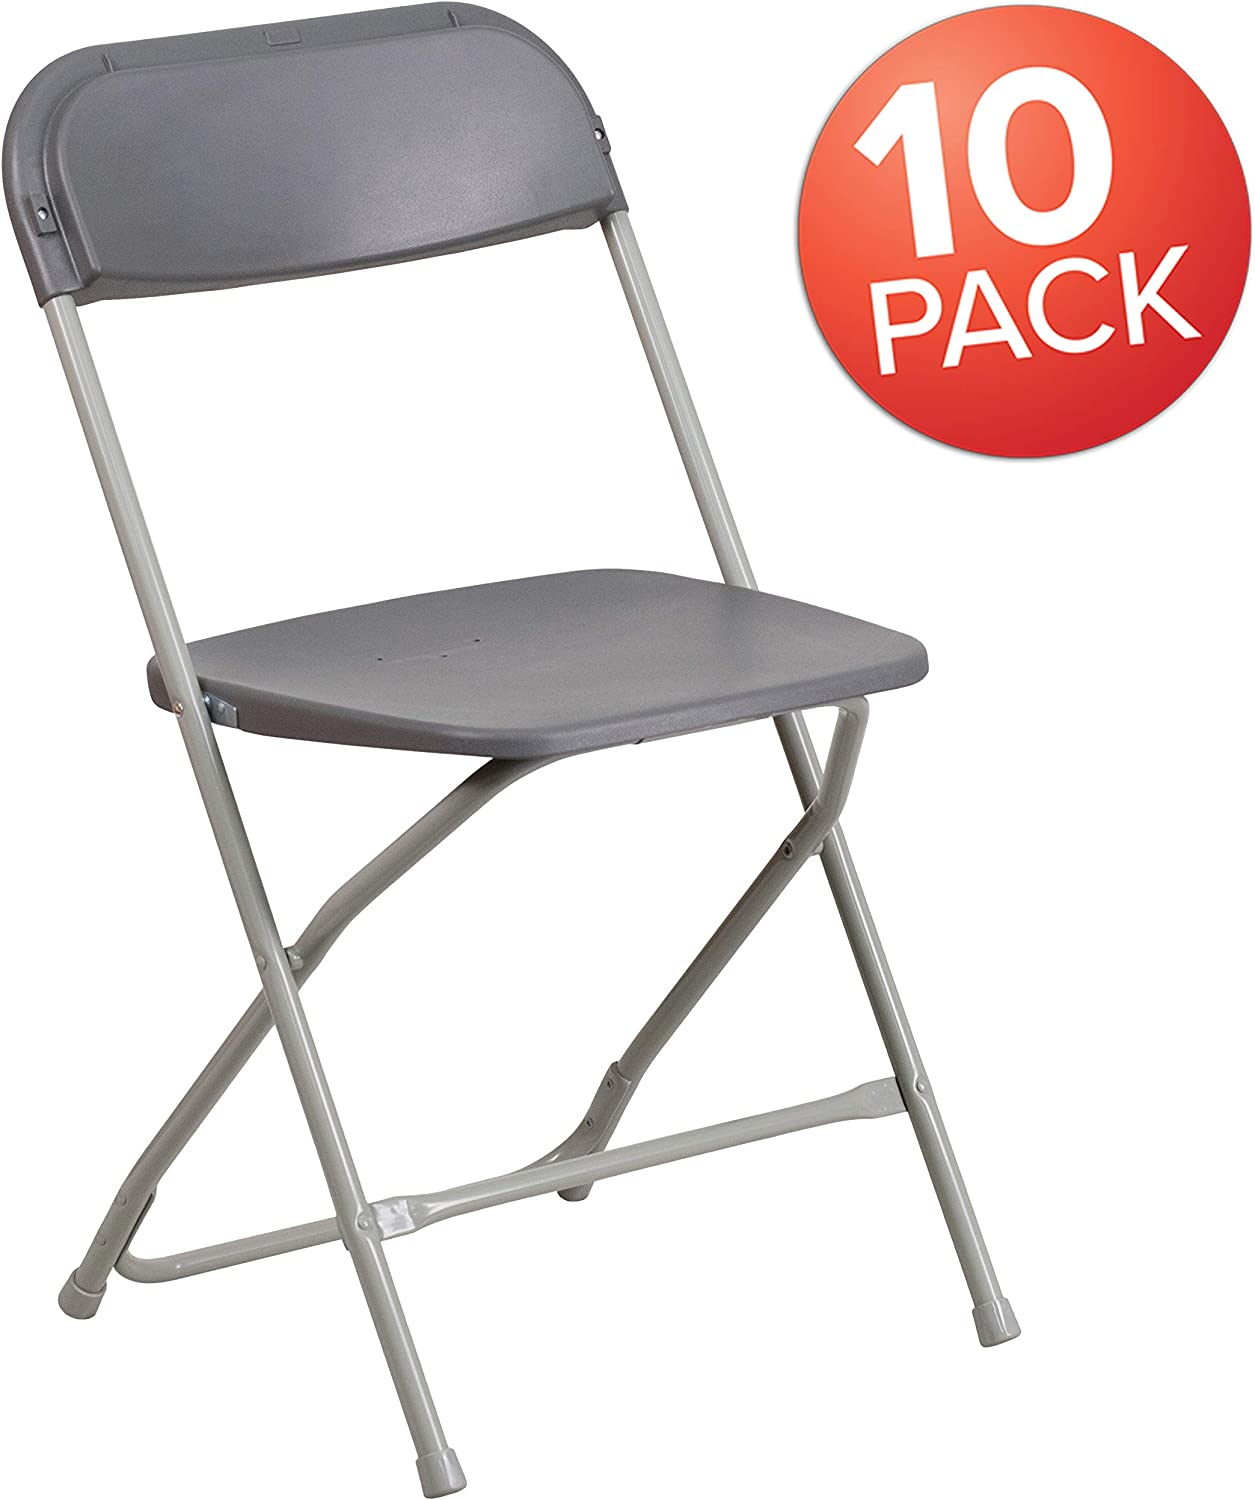 Flash Furniture 10 Pk. HERCULES Series 650 lb. Capacity Premium Grey Plastic Folding Chair